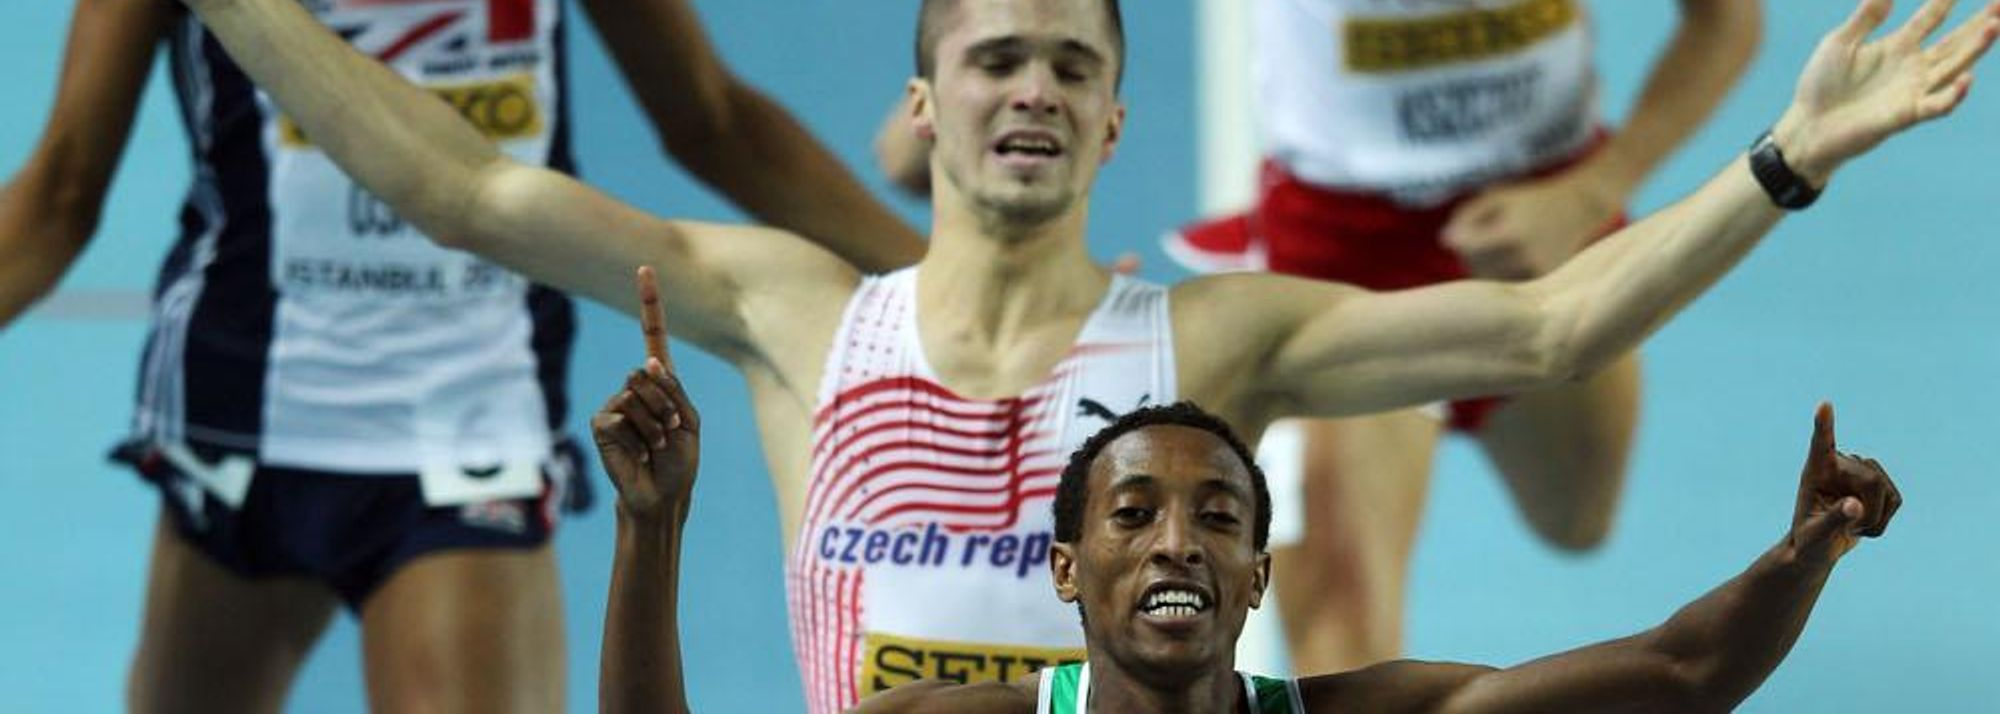 It's fair to say the men's 800 metres at the 14th IAAF World Indoor Championships has not followed the form book, but normalcy was restored at the last when the favourite, Mohammed Aman of Ethiopia, took the gold medal in one minute 48.36 seconds.